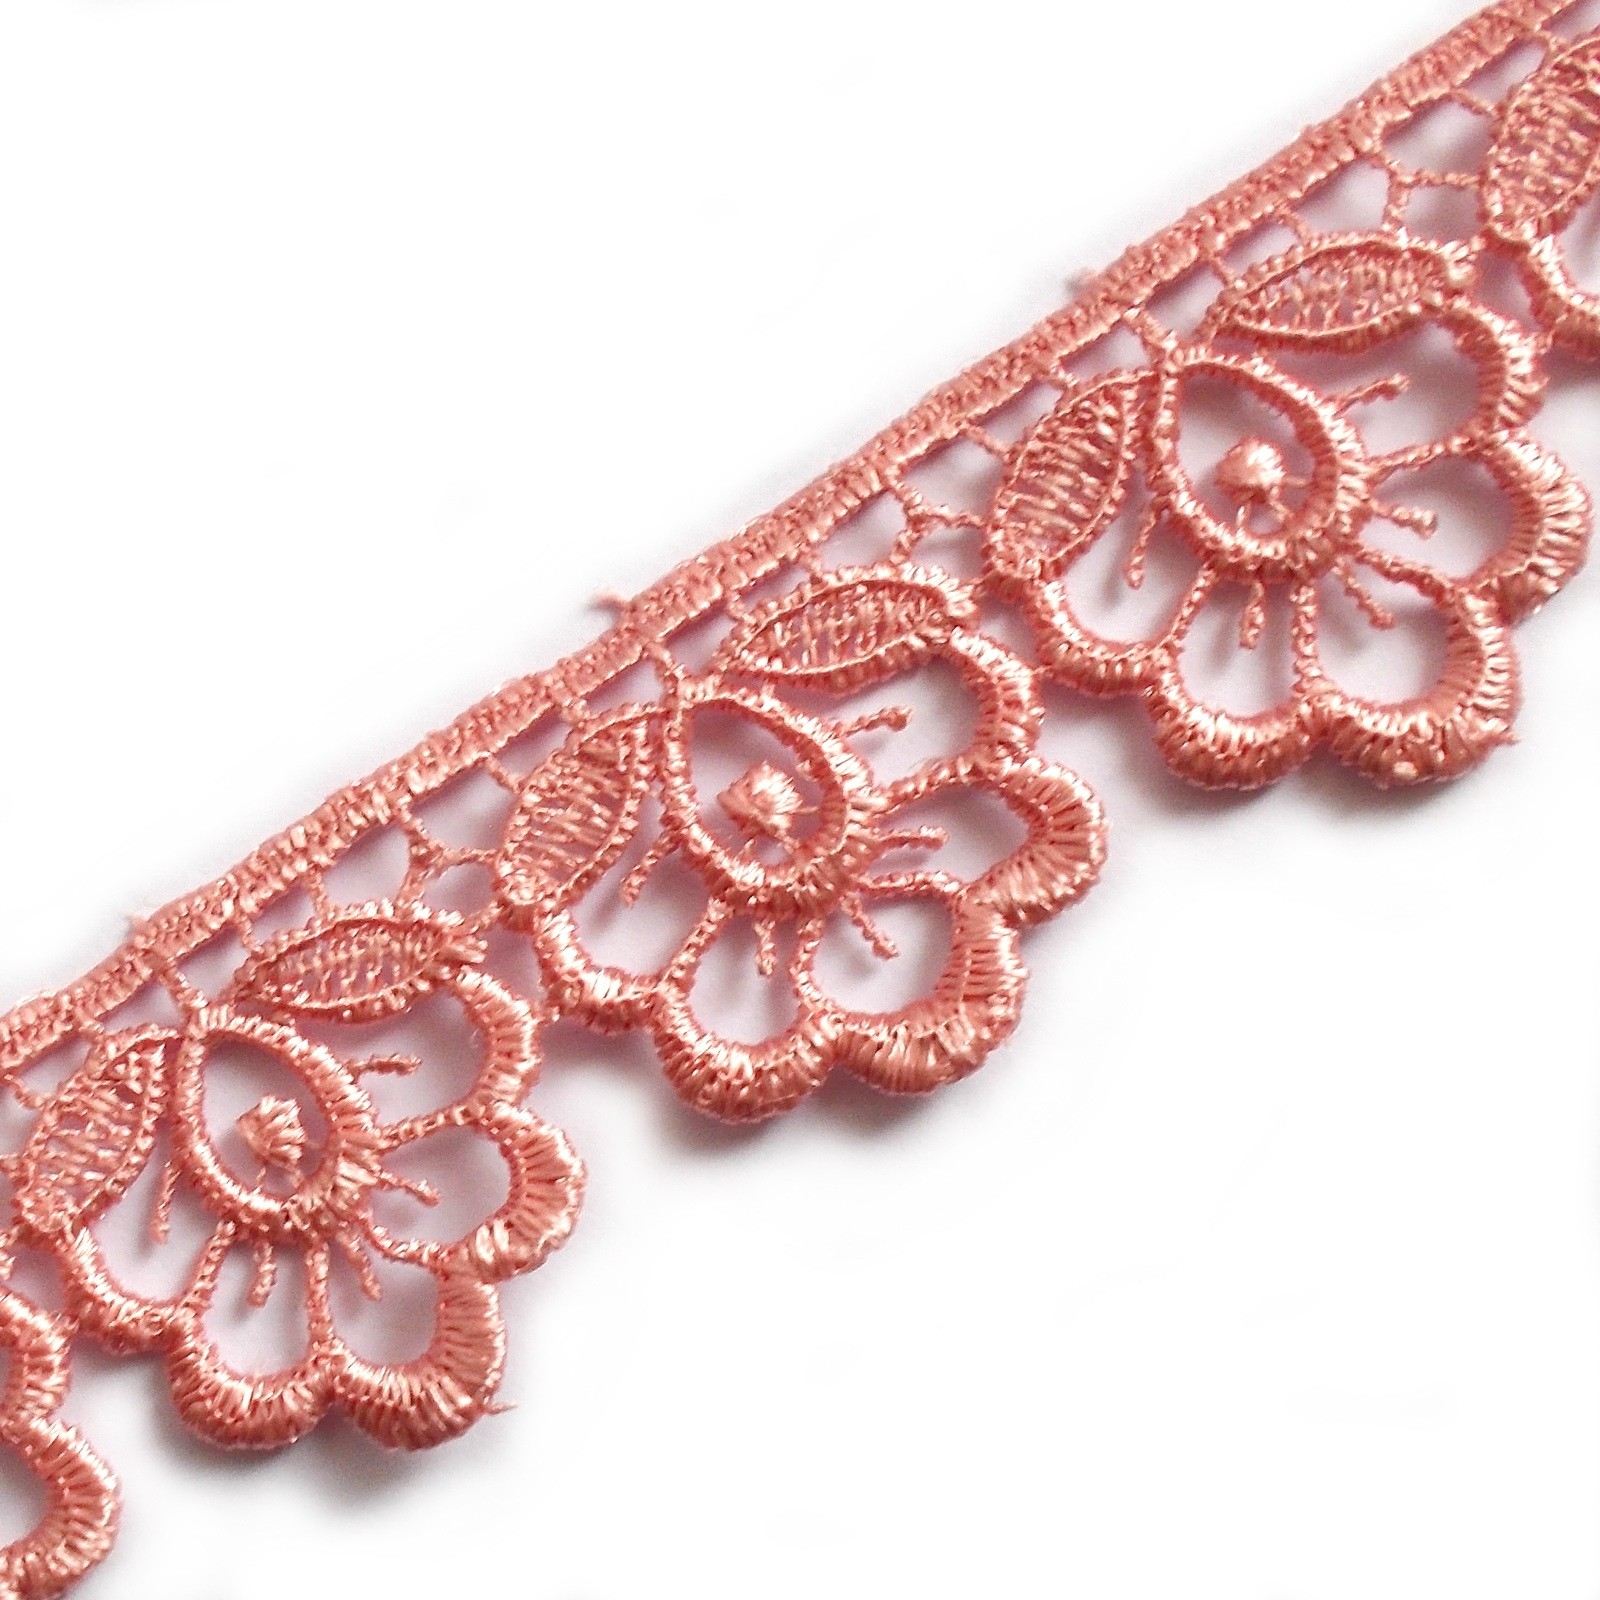 Scalloped Guipure Lace 27mm wide Dusky Pink 1 metre length